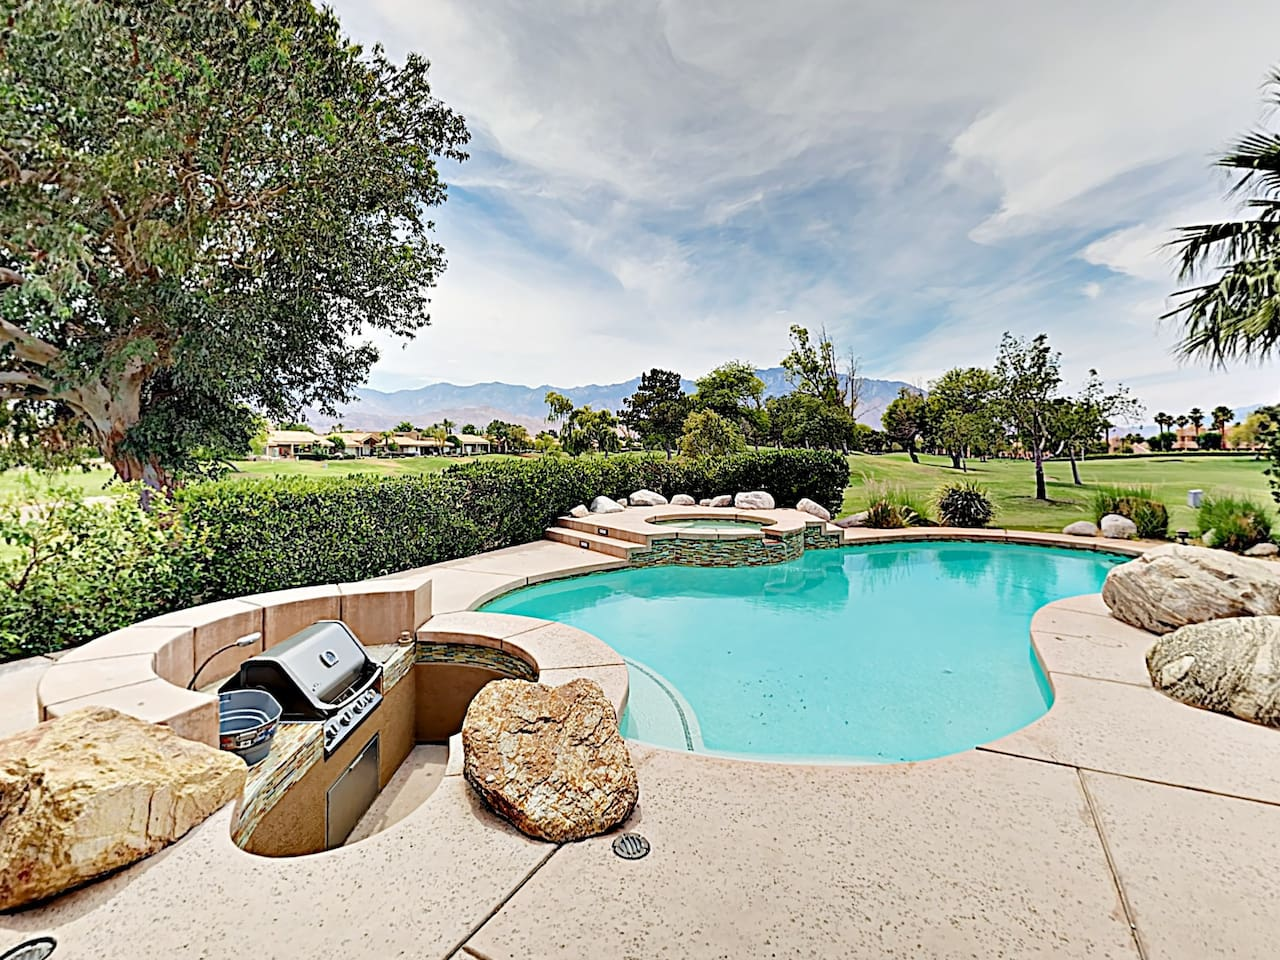 Welcome to Rancho Mirage! This condo is professionally managed by TurnKey Vacation Rentals.